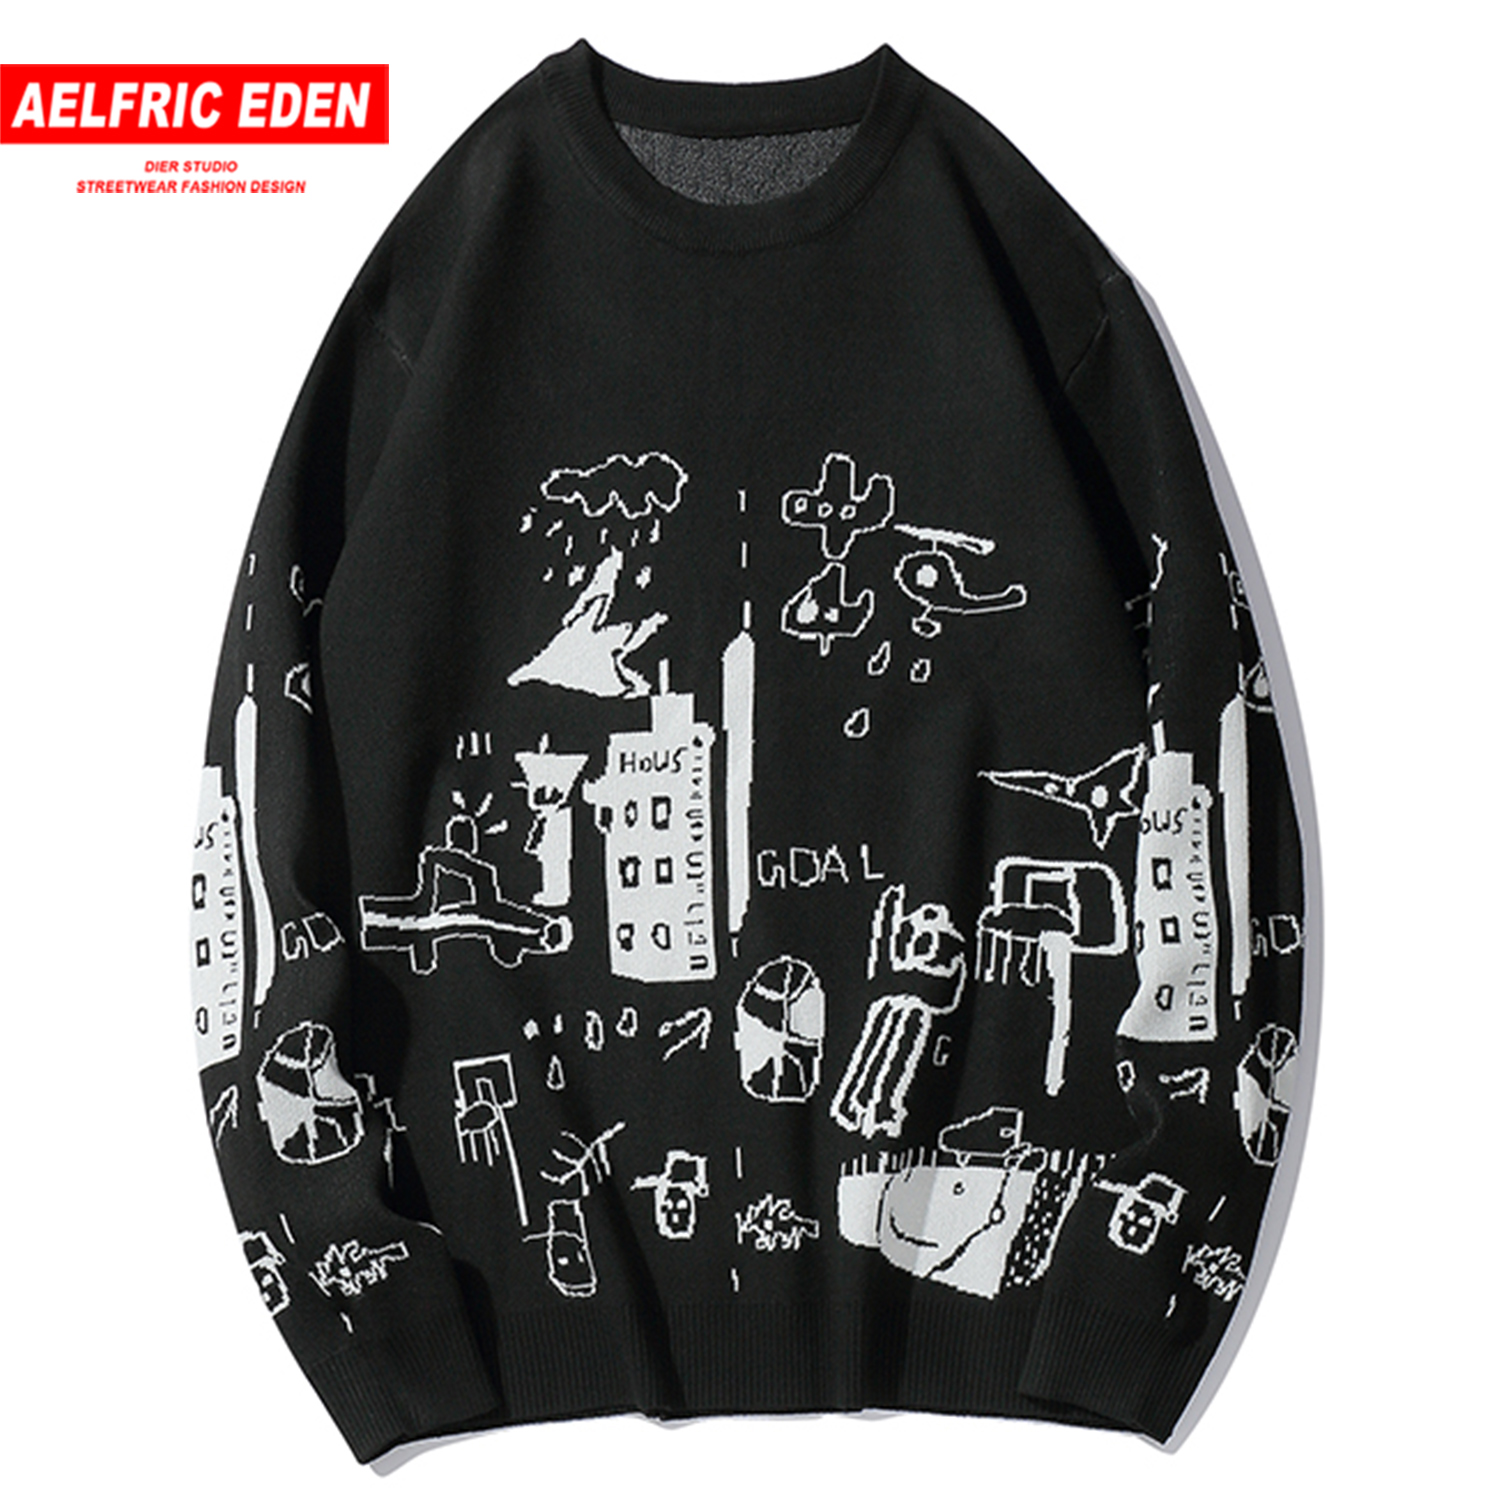 Aelfric Eden Hip Hop Comic Graffiti Knitwear Mens Sweaters 2019 Harajuku Fashion Male Oversized  Tops Casual Streetwear Pullover